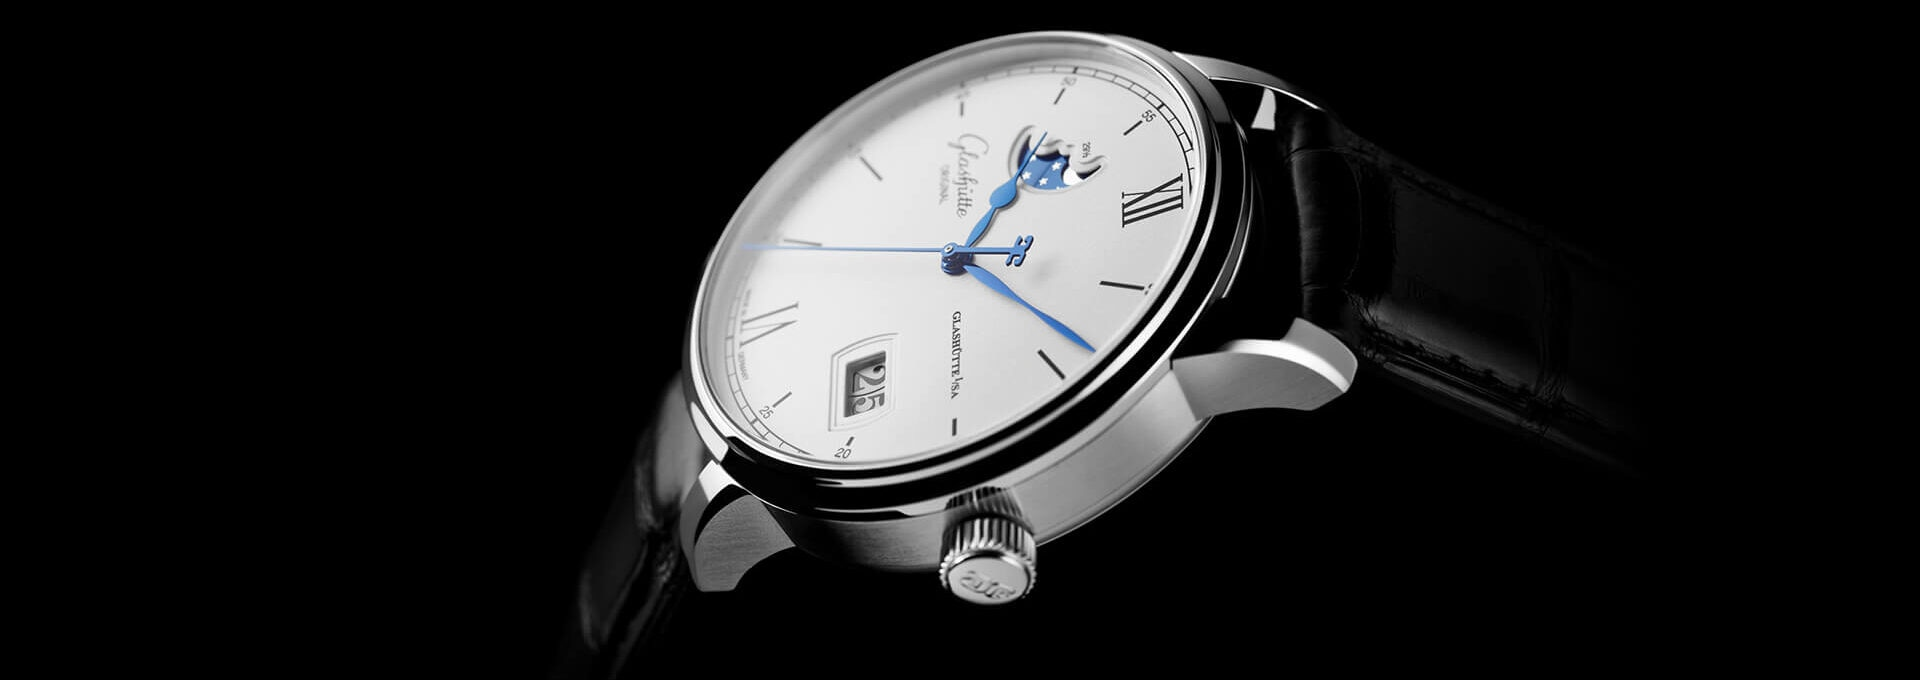 Glashuette_Original-W13604010230-Detail-4